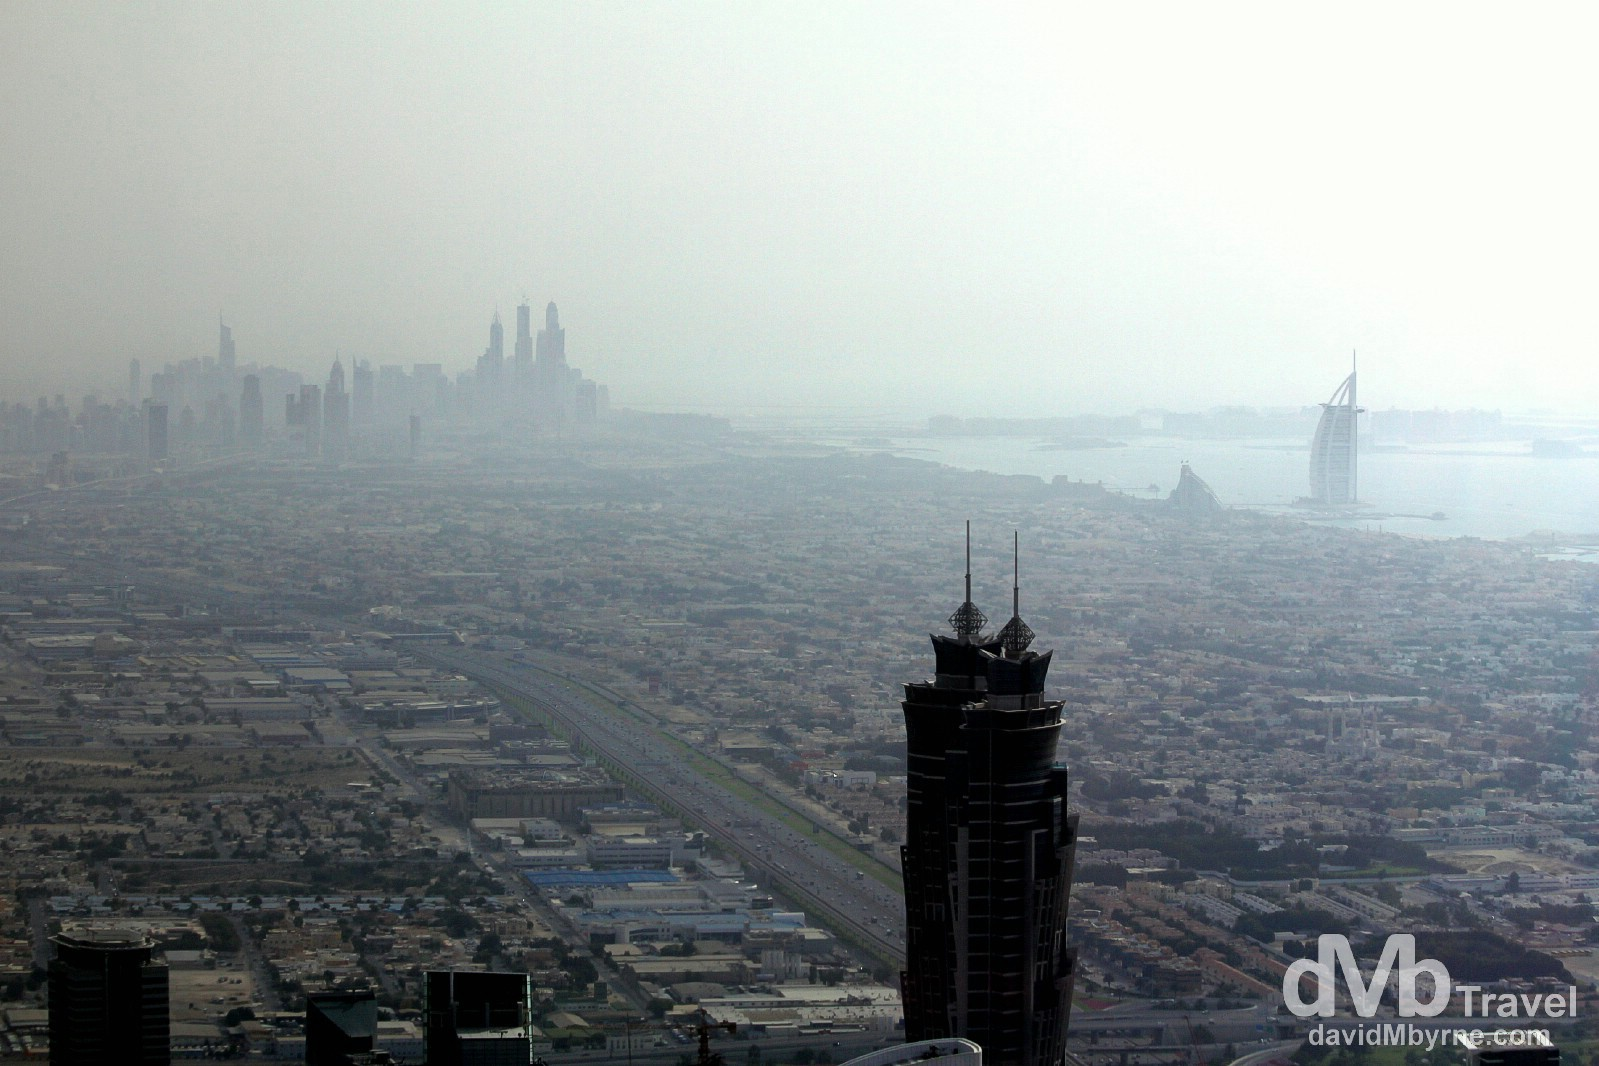 The distant towers of Dubai Marina, the man-made Palm Jumeirah island & the 7-star Burj Al Arab as seen from the At The Top, the 124th floor viewing deck of the Burj Khalifa, the world's tallest building. Dubai, UAE. April 18th, 2014.